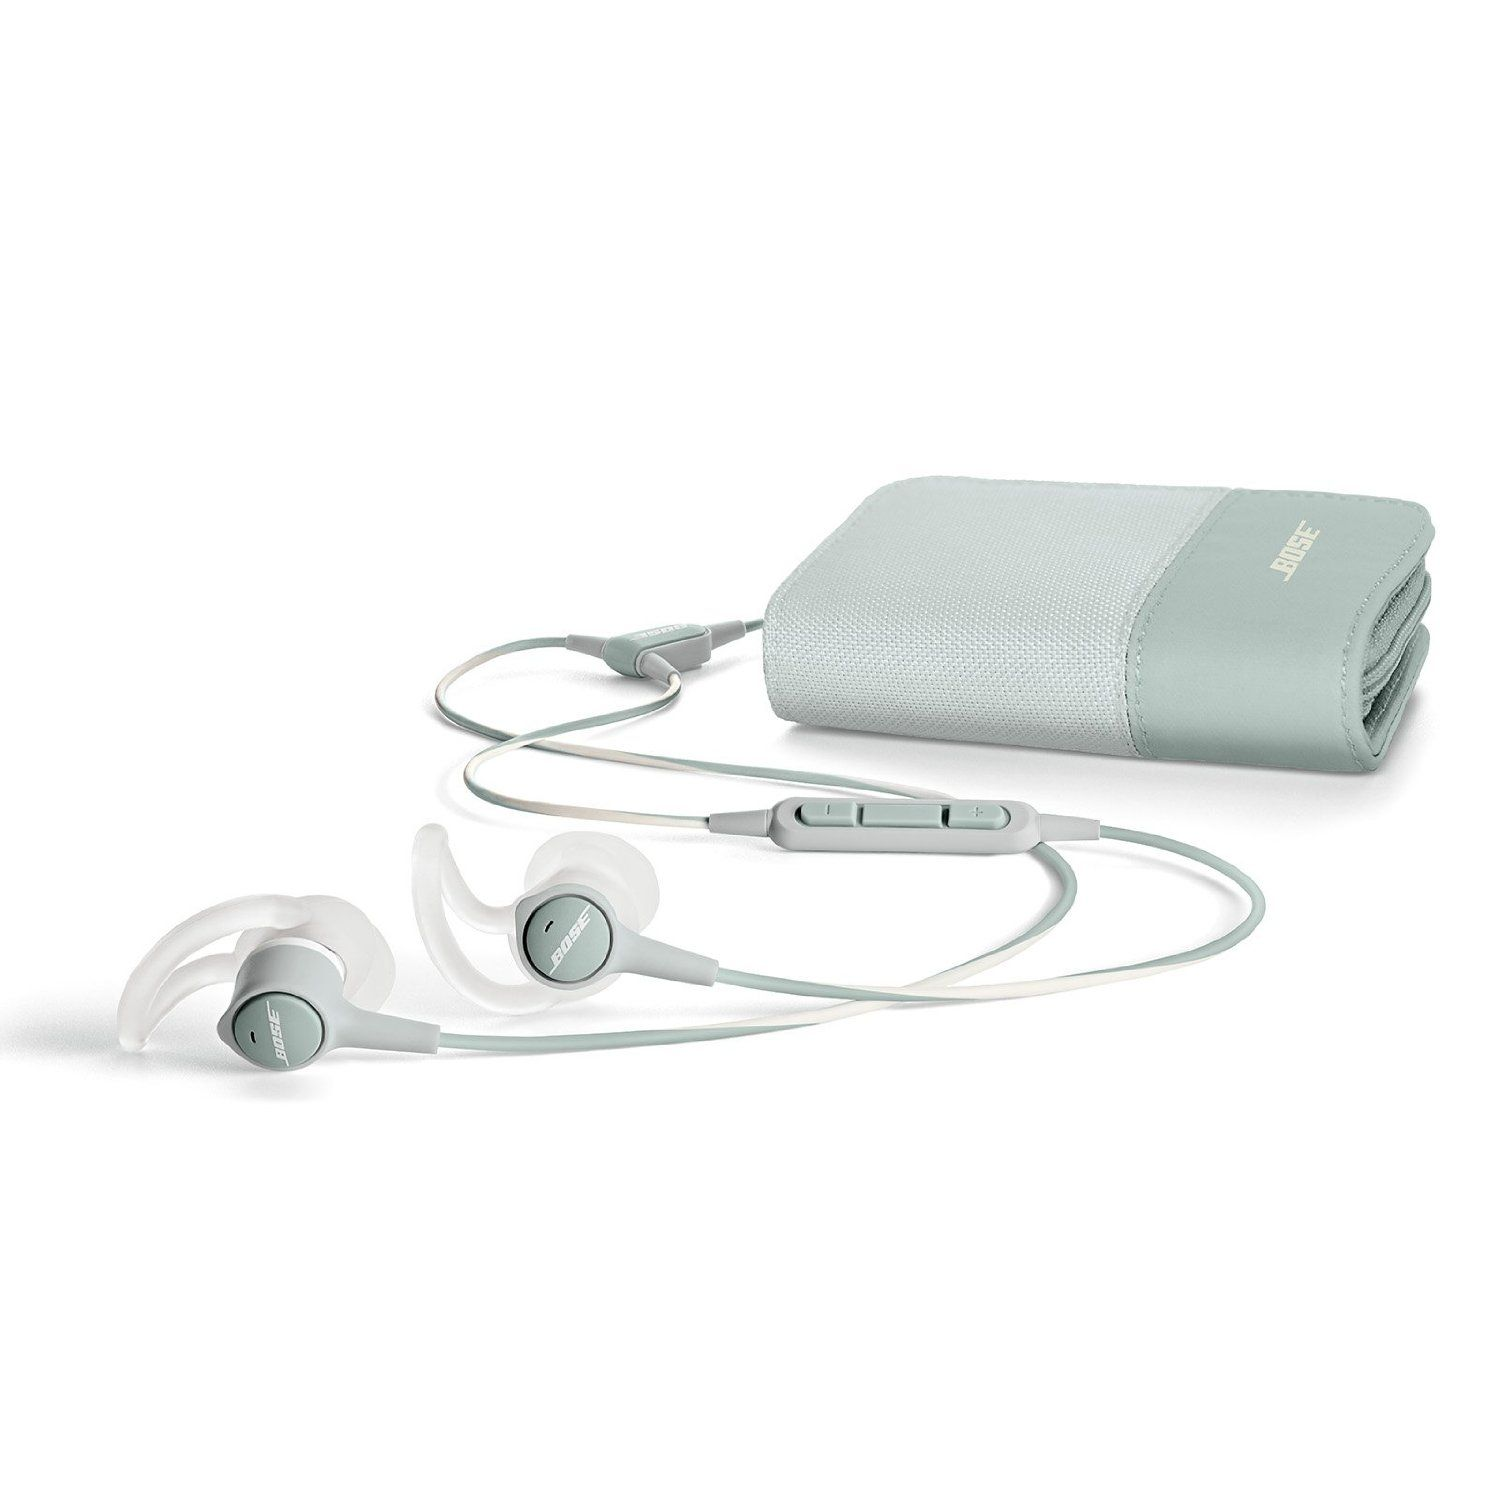 Наушники BOSE SoundTrue in-ear MFI - White, картинка 3